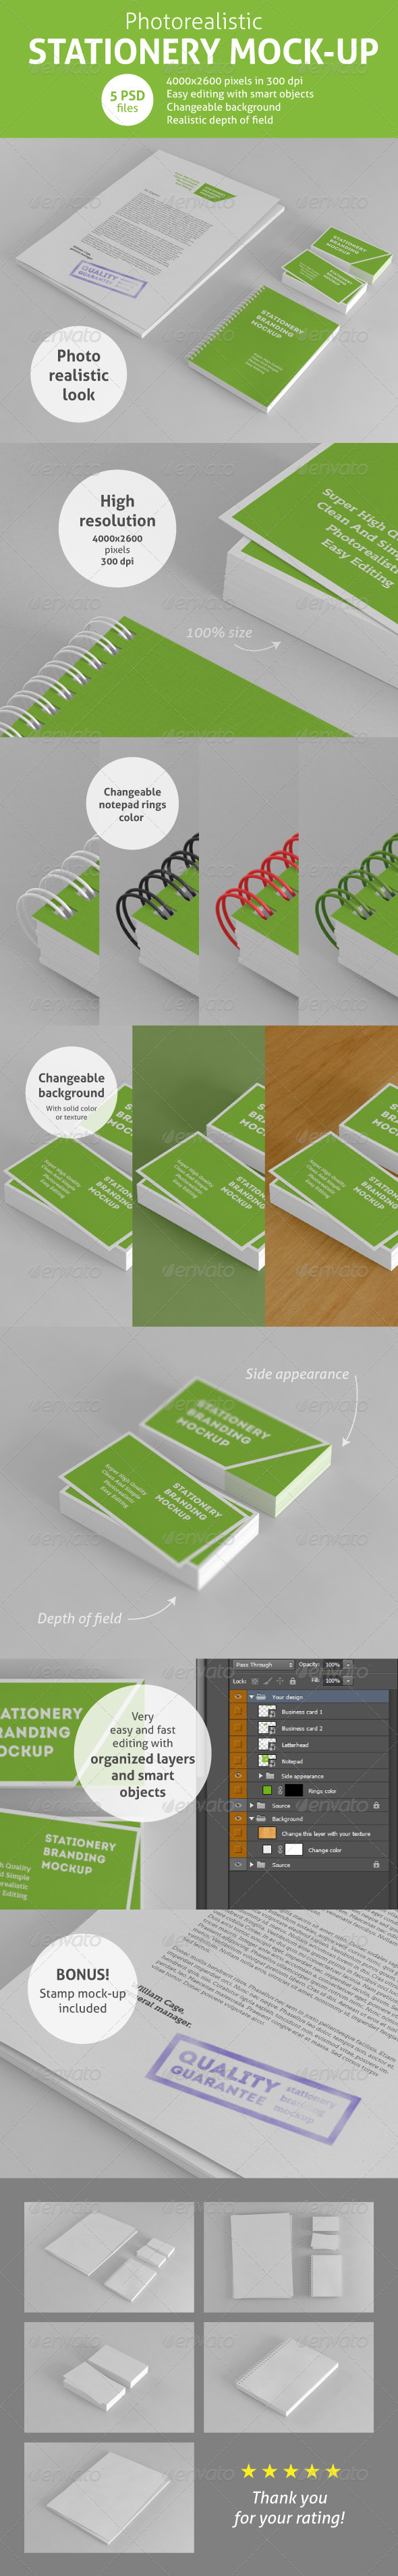 Photorealistic Stationery Branding Mock-Up - Stationery Print